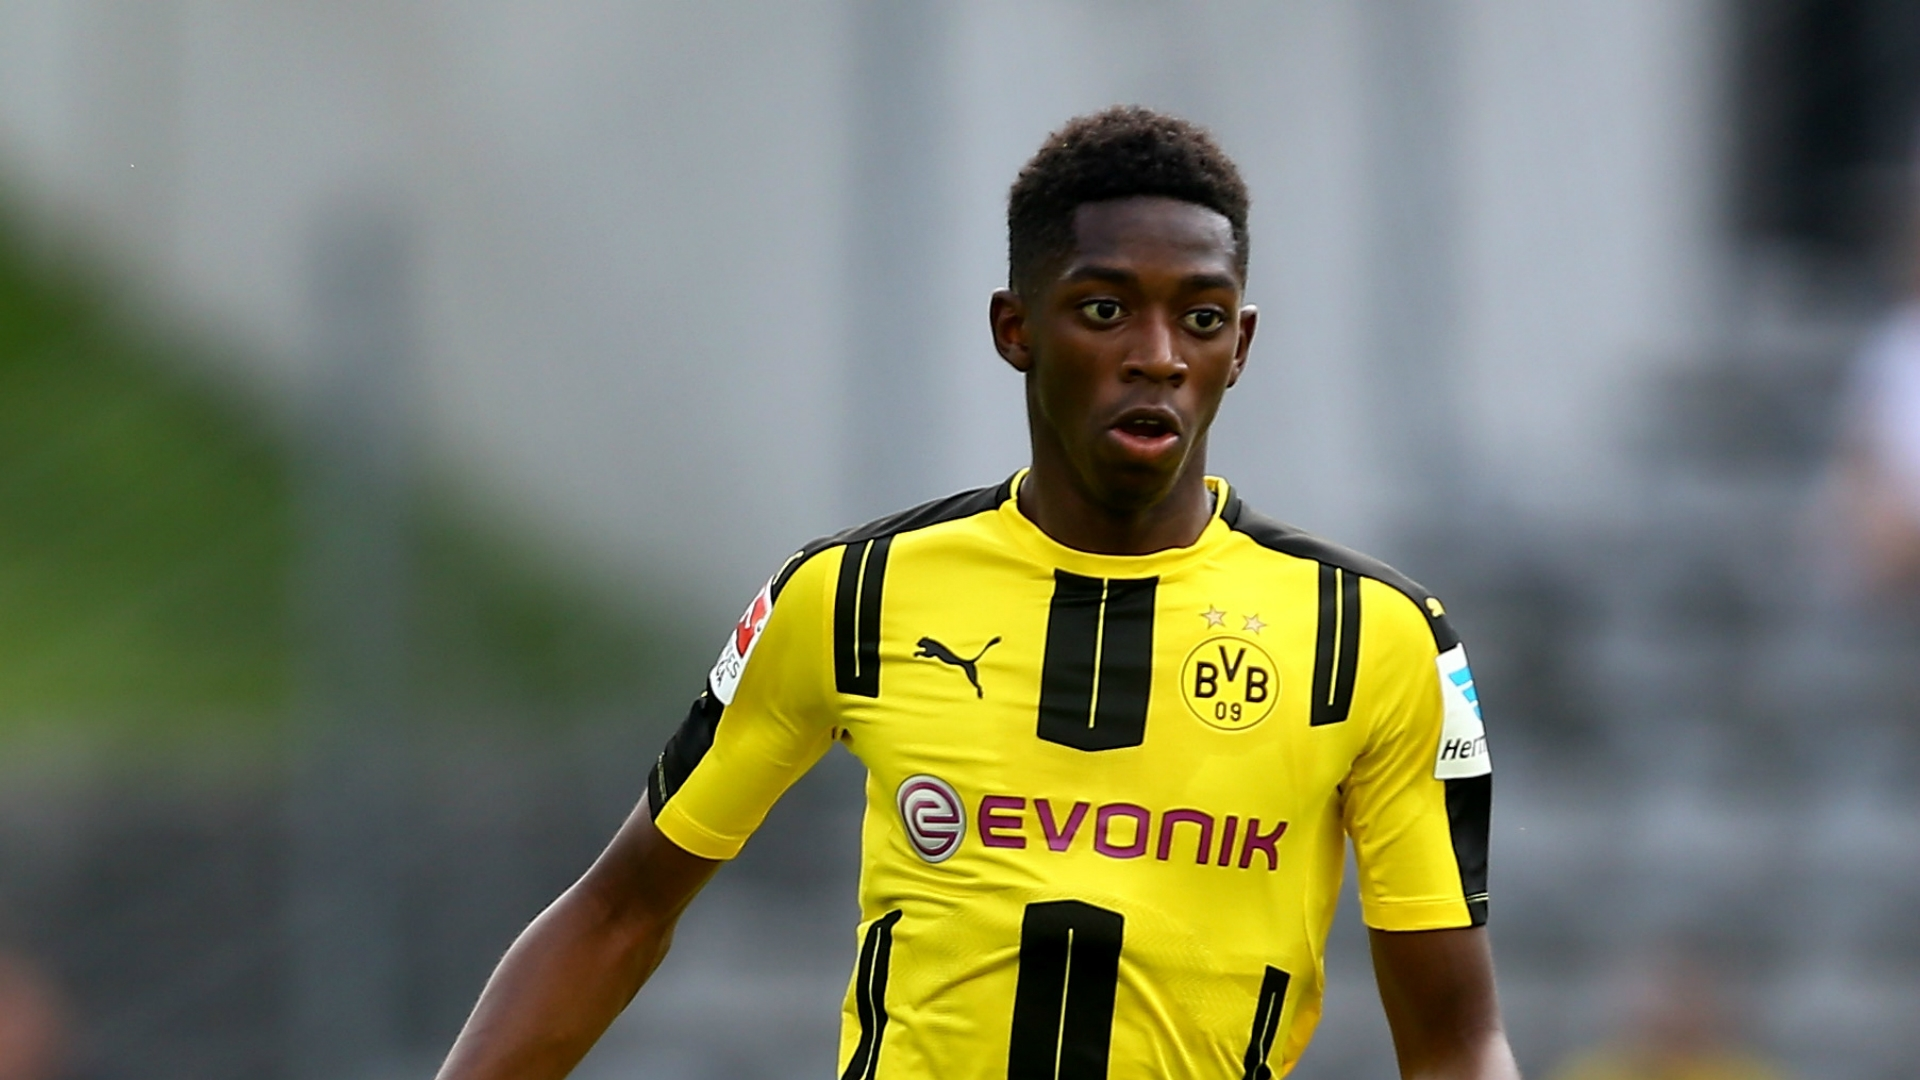 Barcelona s bid for Ousmane Dembele has few at Dortmund worrying